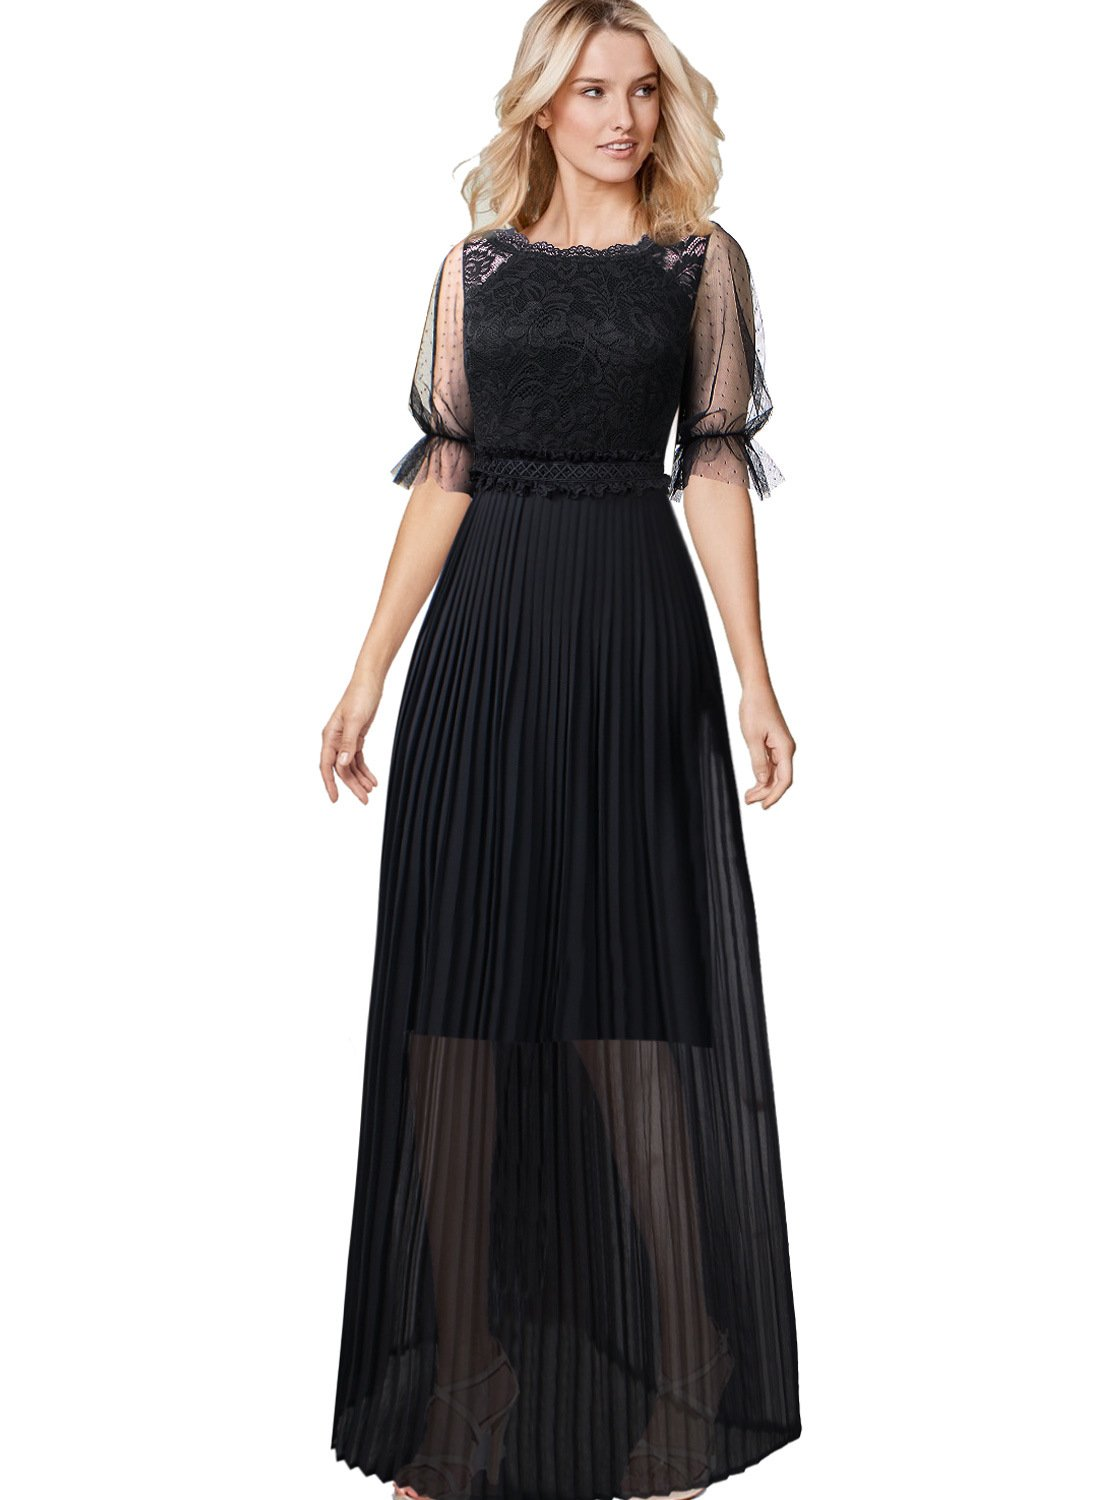 VFSHOW Women Pleated Lace Chiffon Formal Evening Casual Maxi A-Line Dress 443 BLK XL